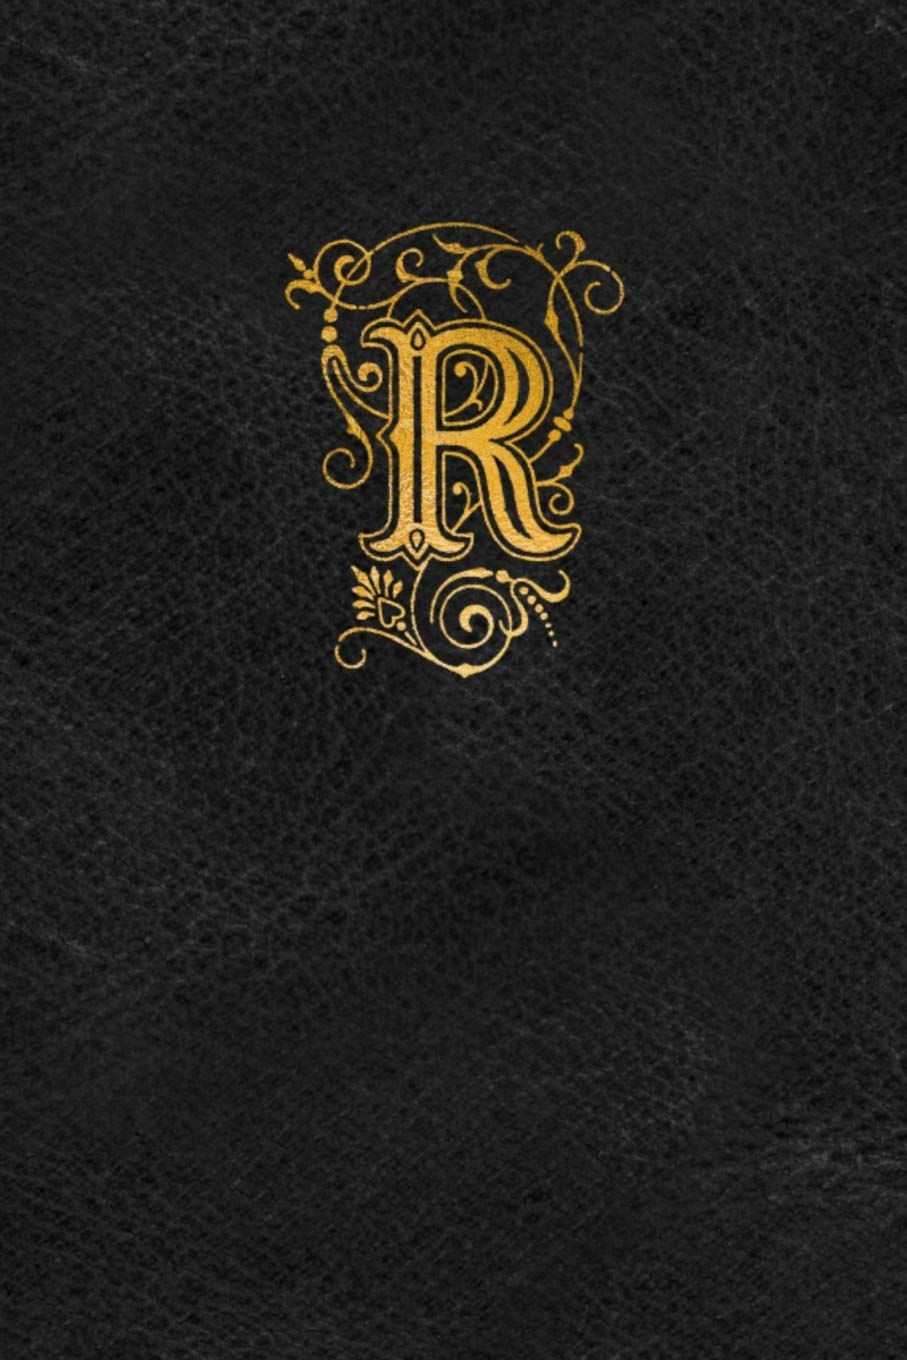 Old English Monogram Journal Letter R Elegant Golden Flourish Capital Letter On Black Leather Look Background Amazon Ca Spring Hill Stationery Books